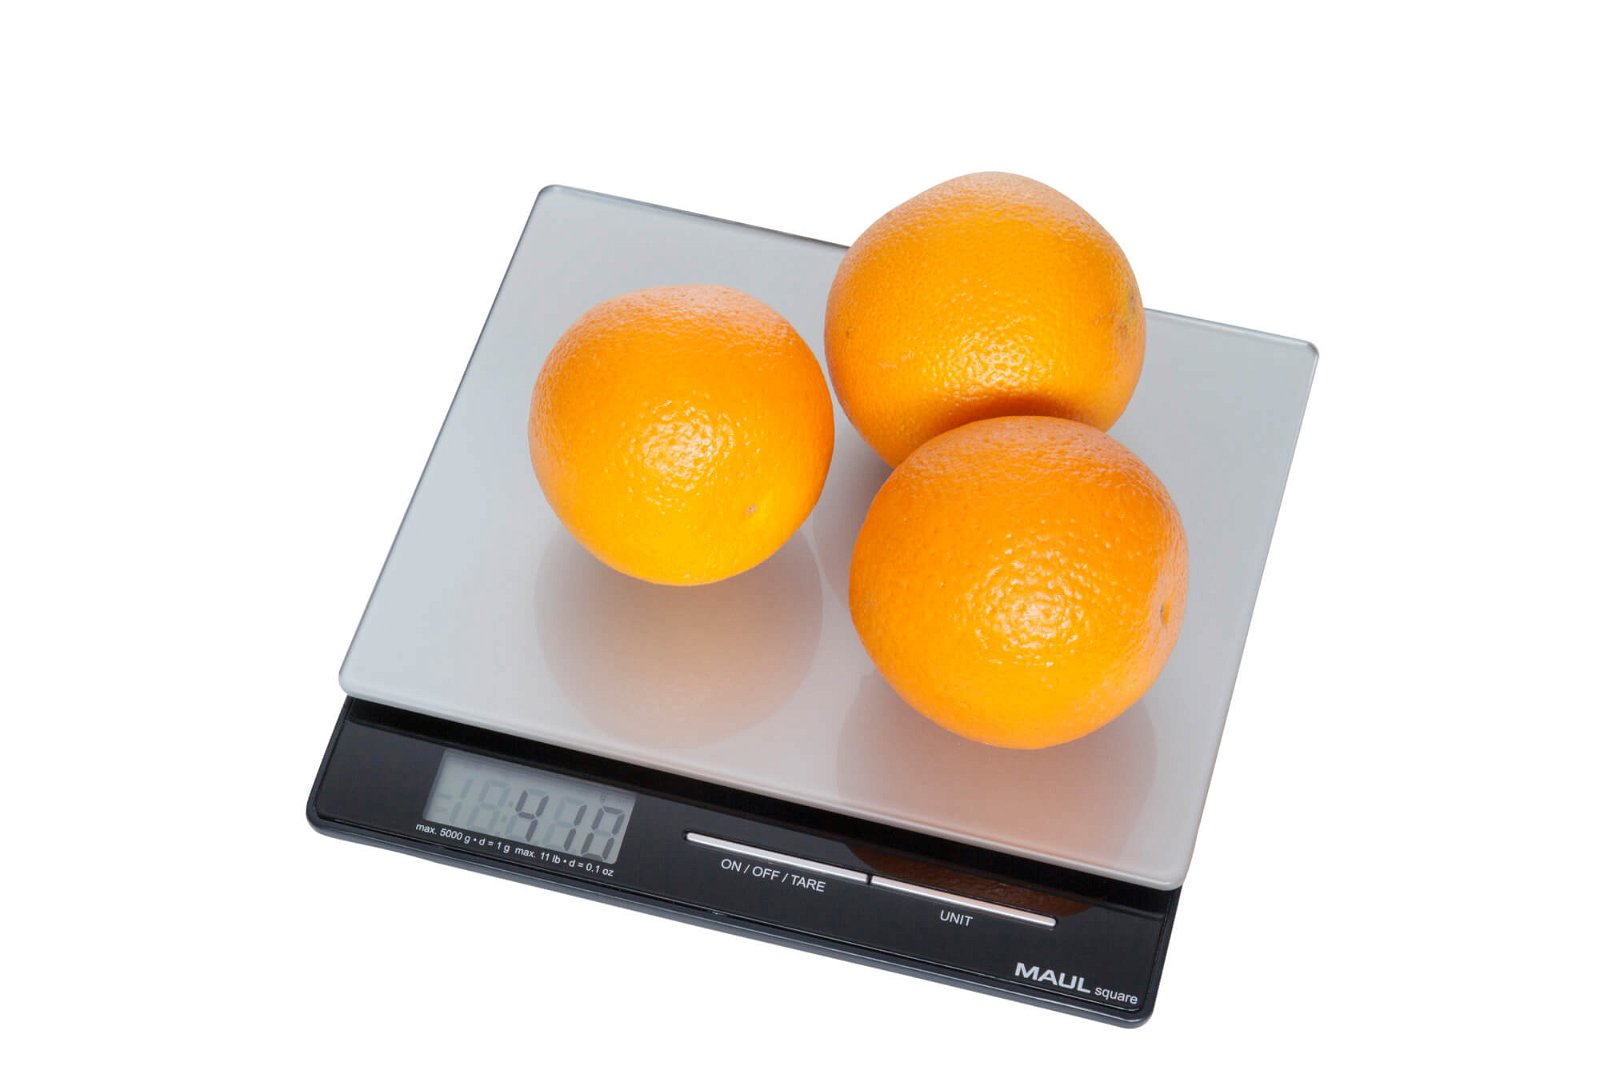 Briefwaage MAULsquare mit Batterie, 5000 g, silber